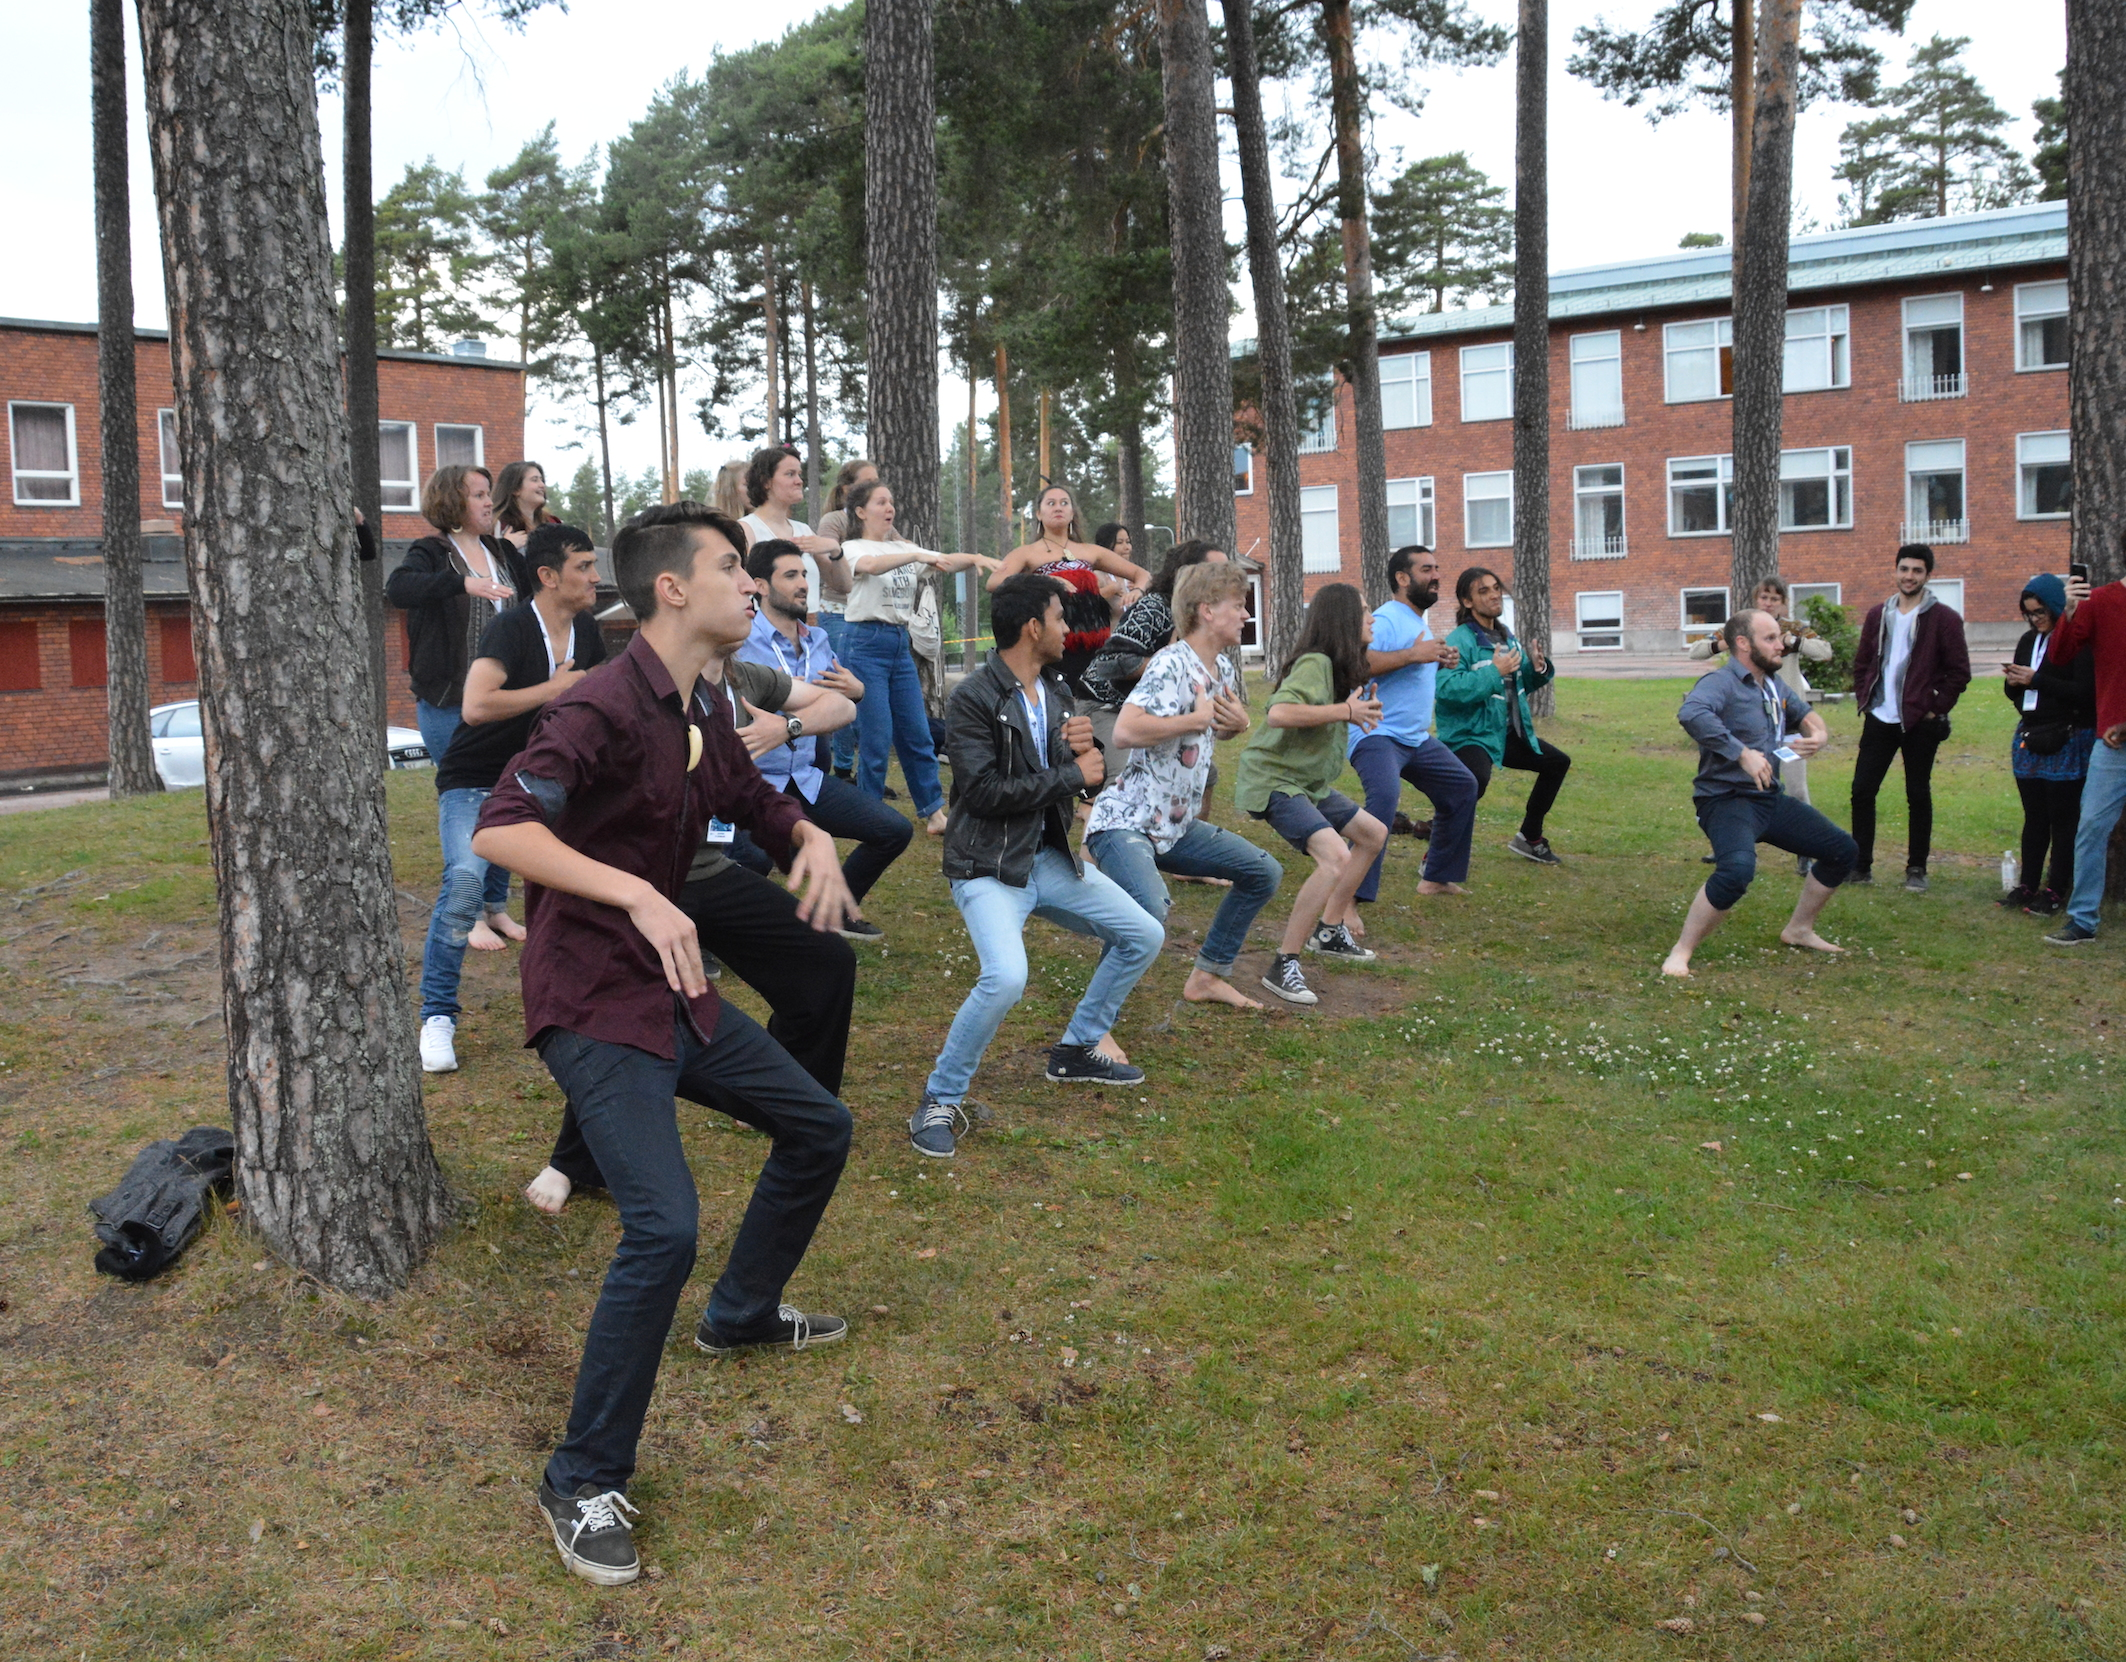 Ethno Doing The New Zealand Haka In The School Park